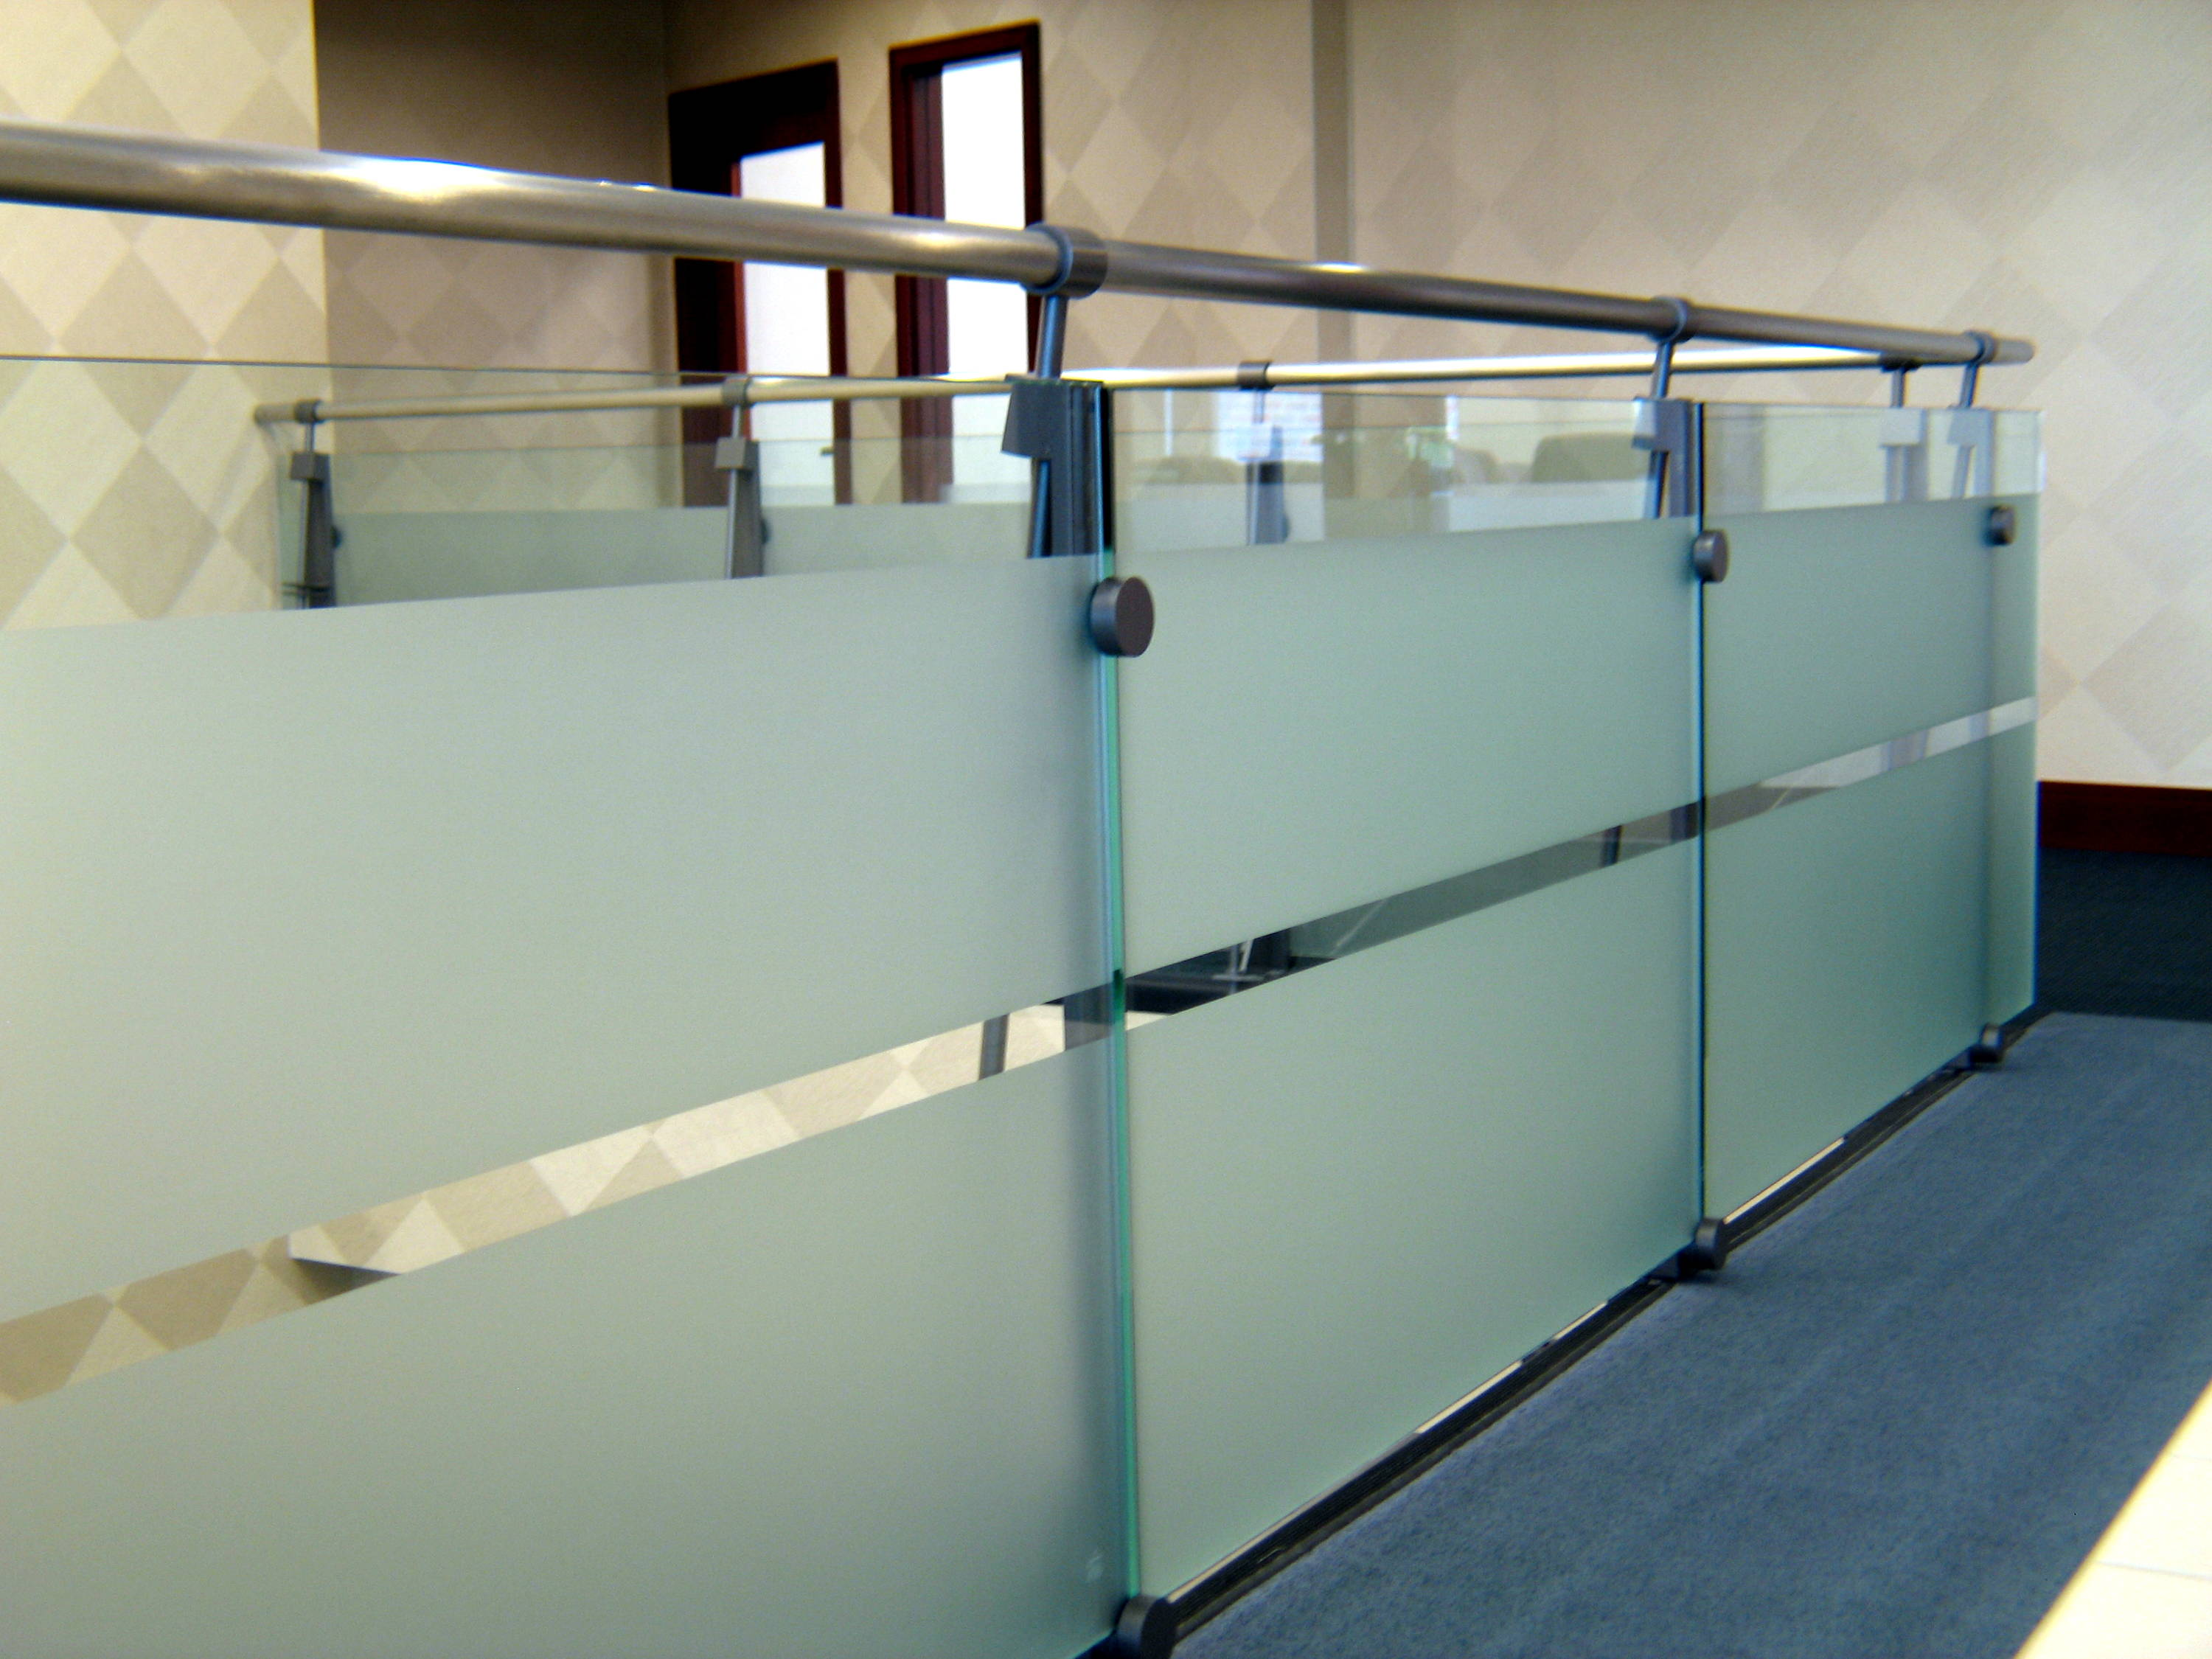 Privacy glass handrails with metal railing